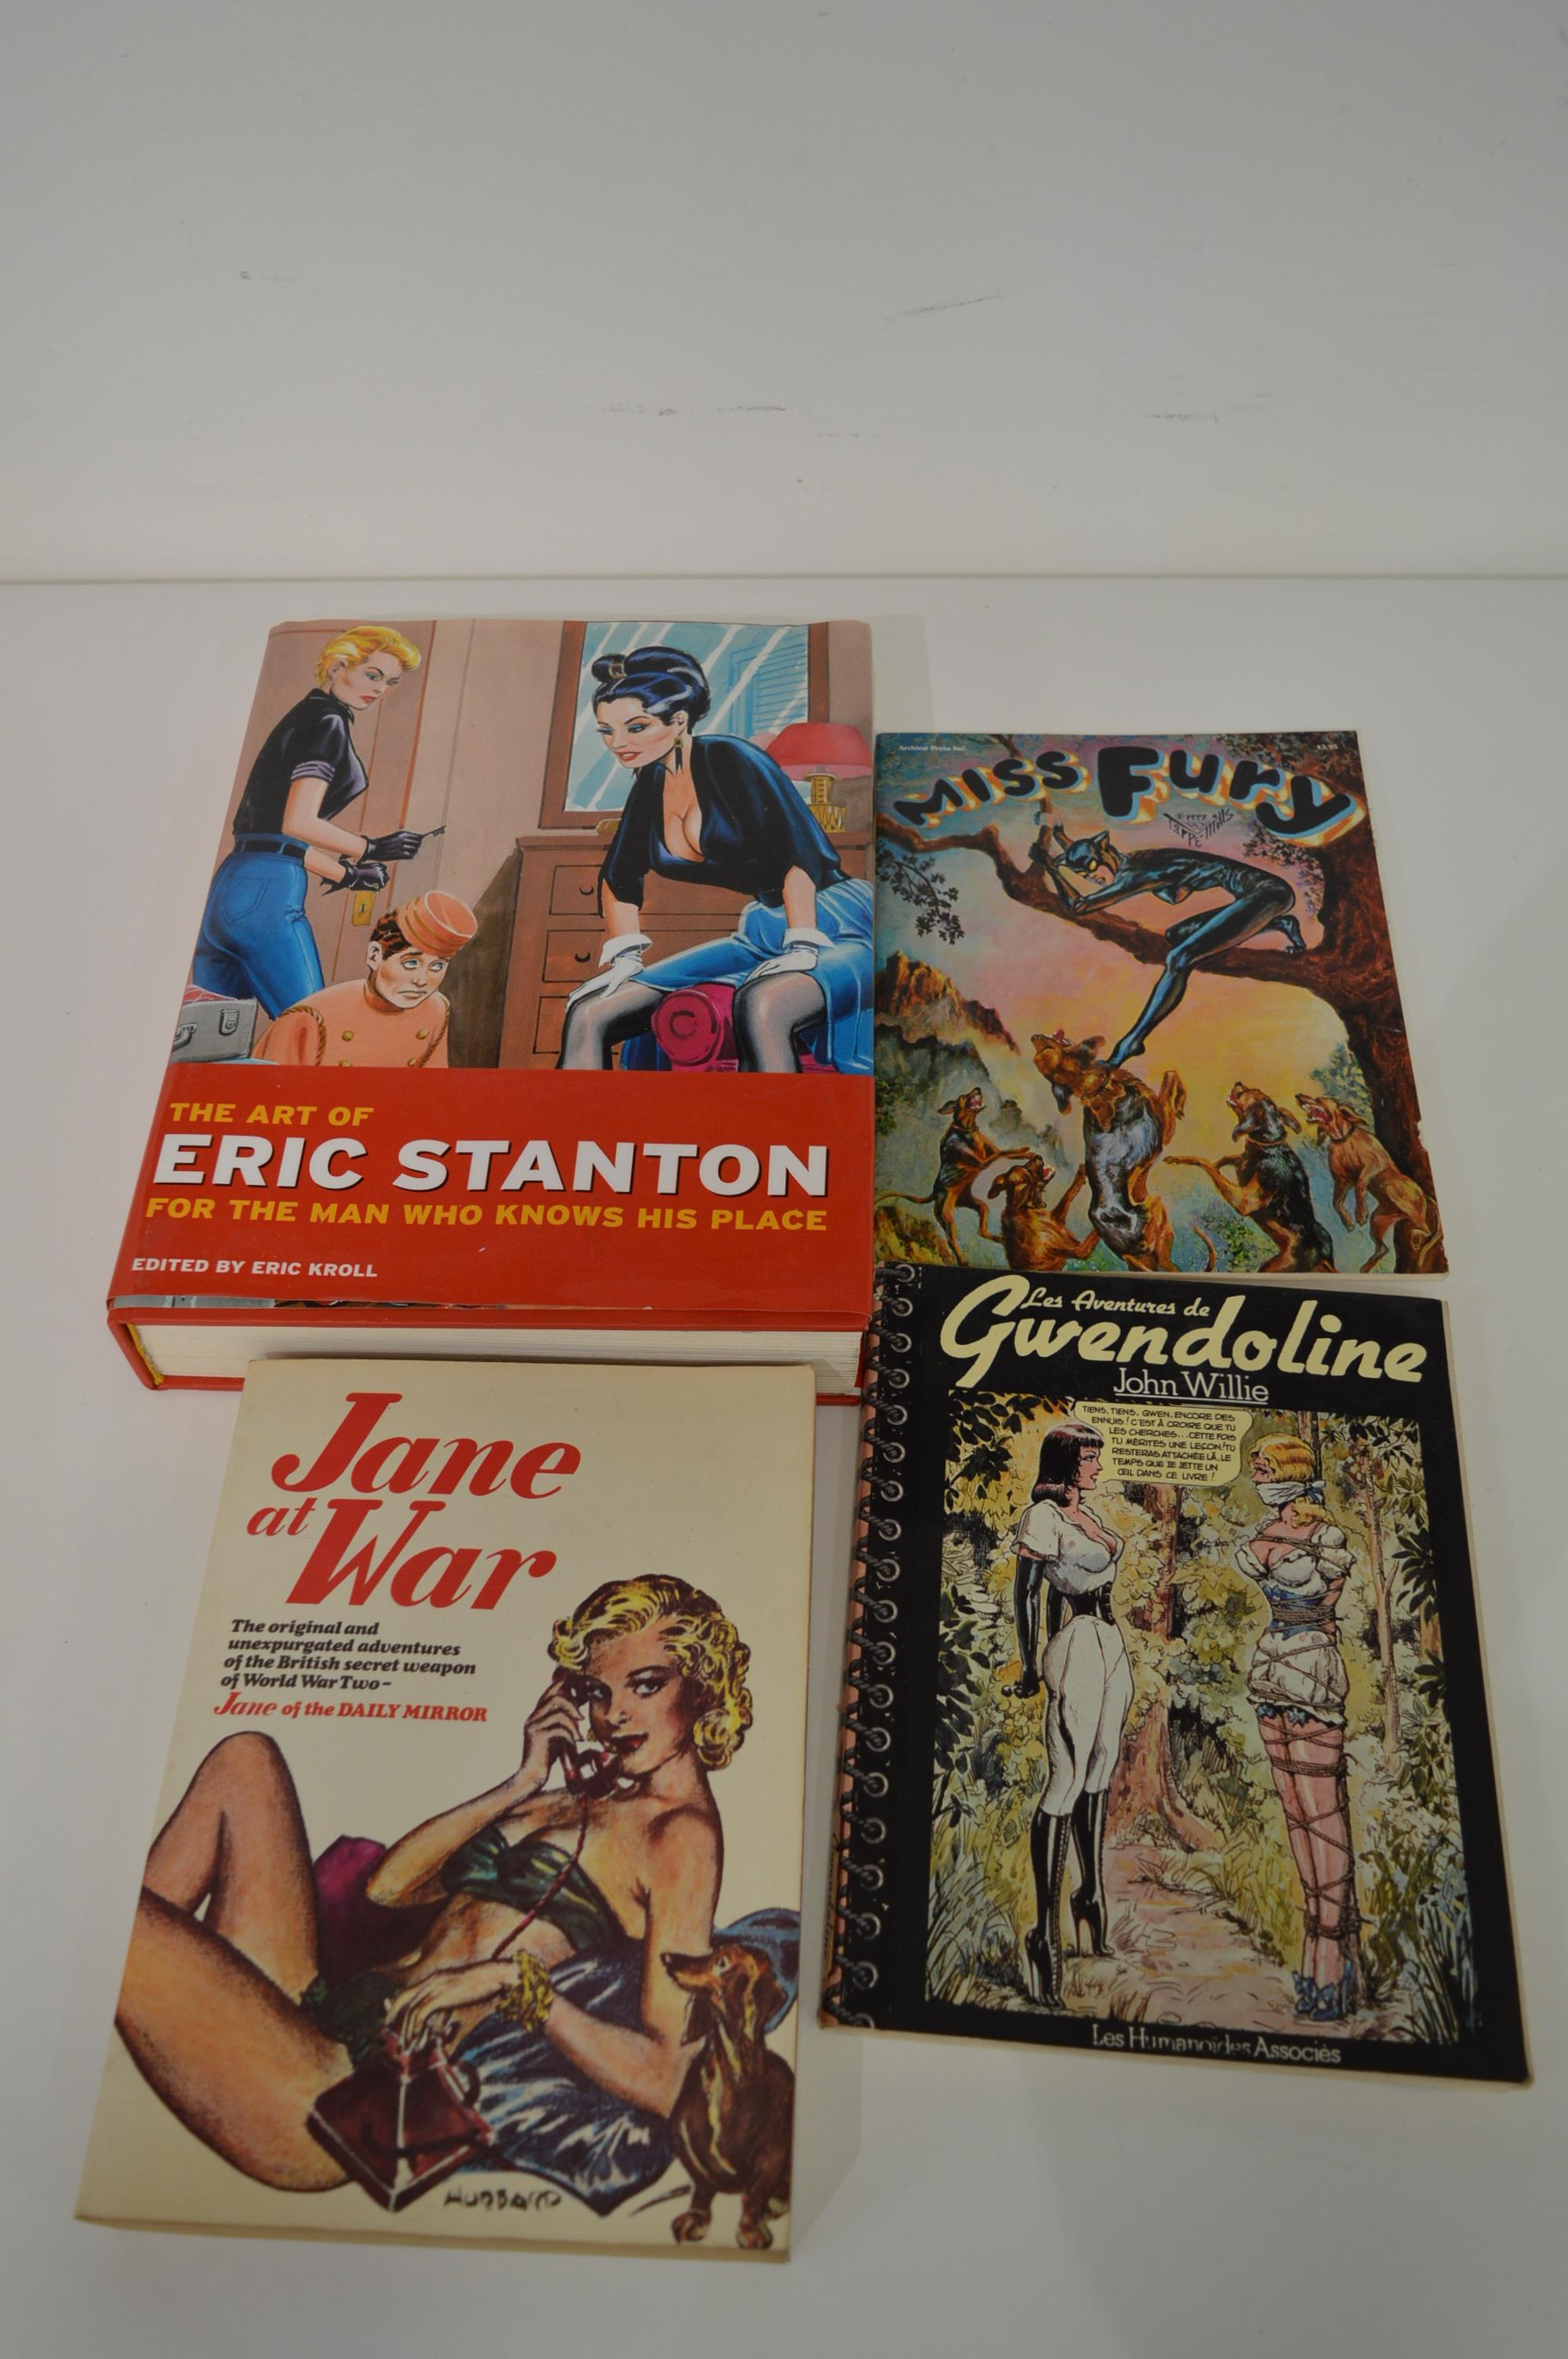 The Art of Eric Stanton and other books of erotic graphic art.